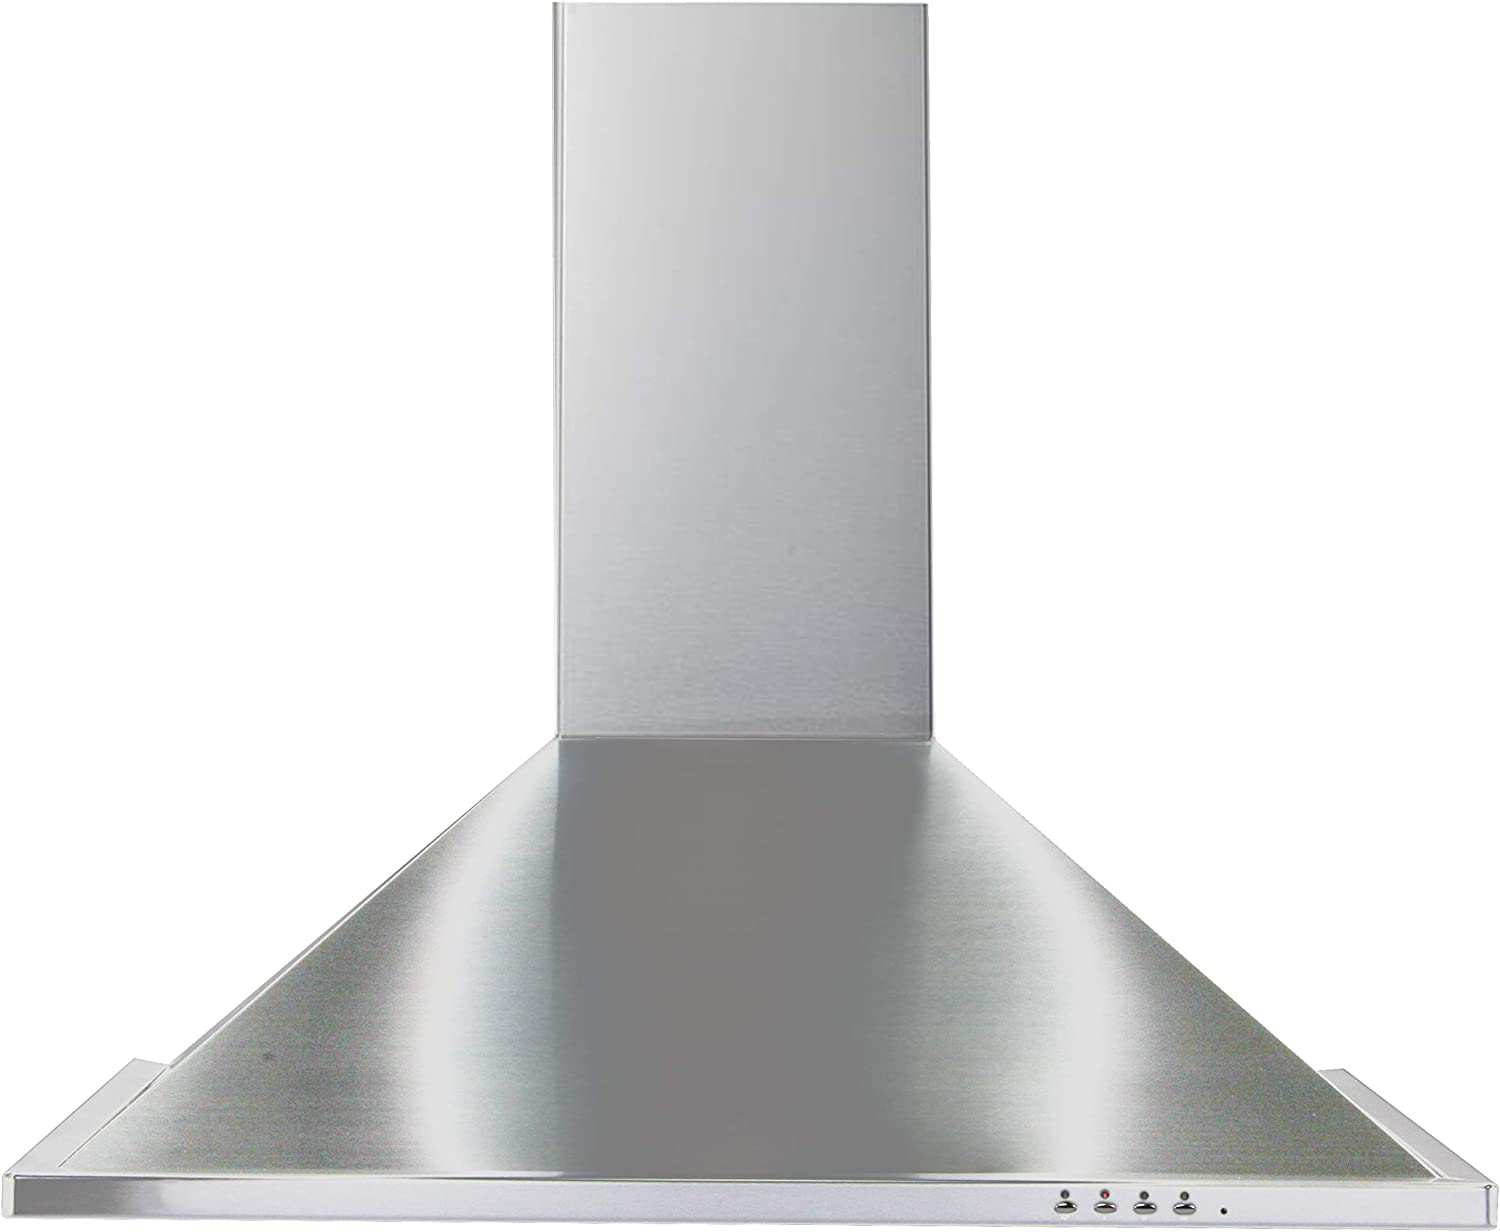 "Equator 30"" Made in Europe Wall Mount Range hood, Stainless, LED lights, 3 Speed, 600 CFM Timer with Auto Speed Reduction"